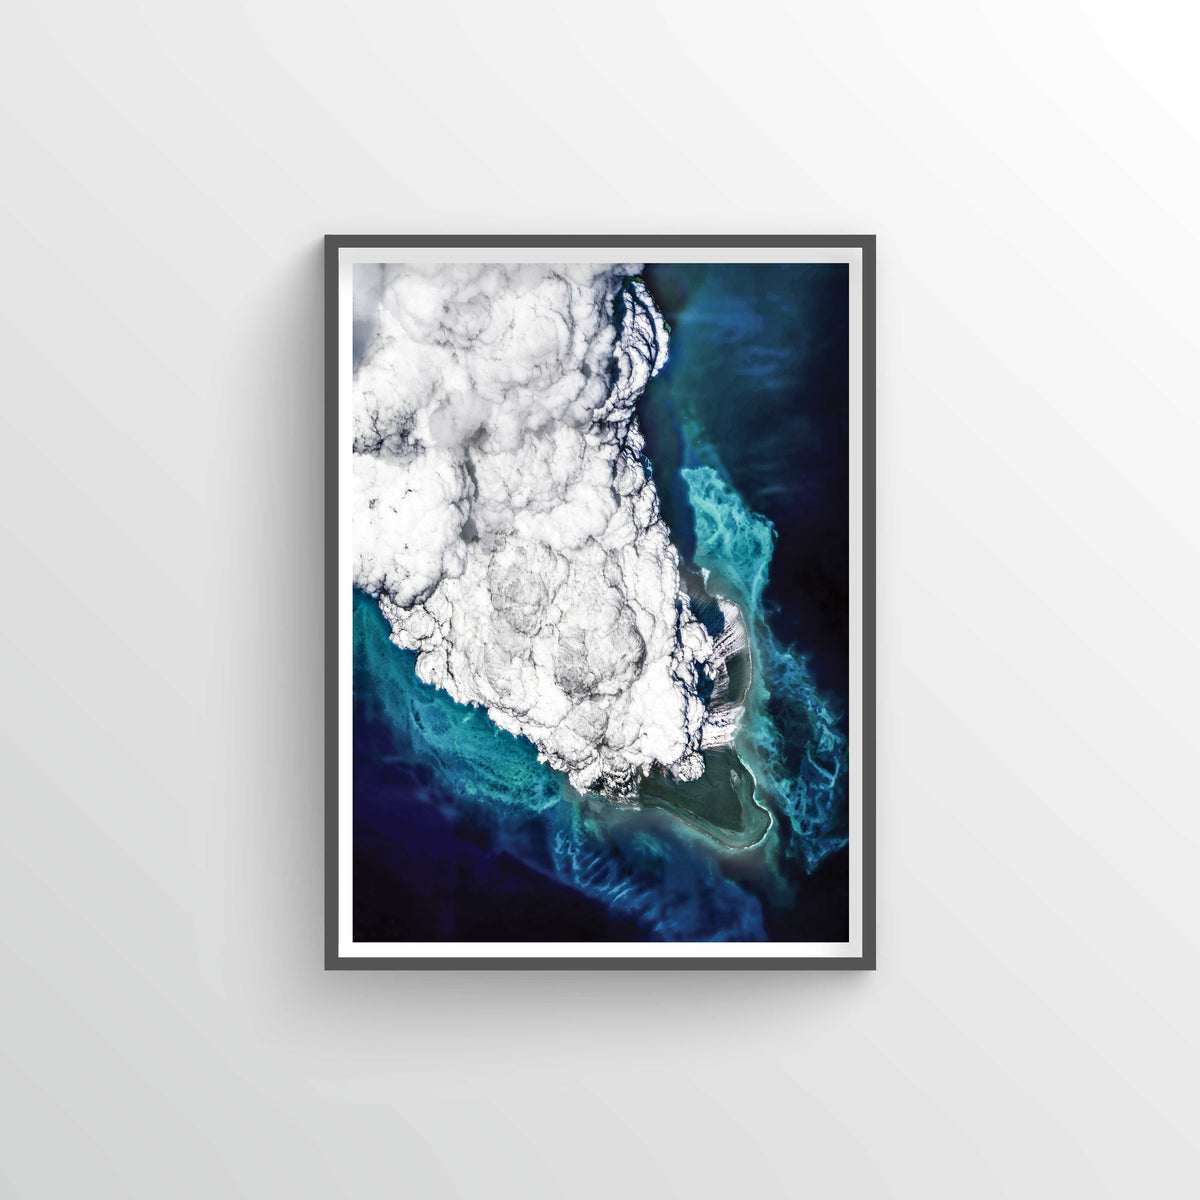 Bogoslof Earth Photography - Art Print - Point Two Design